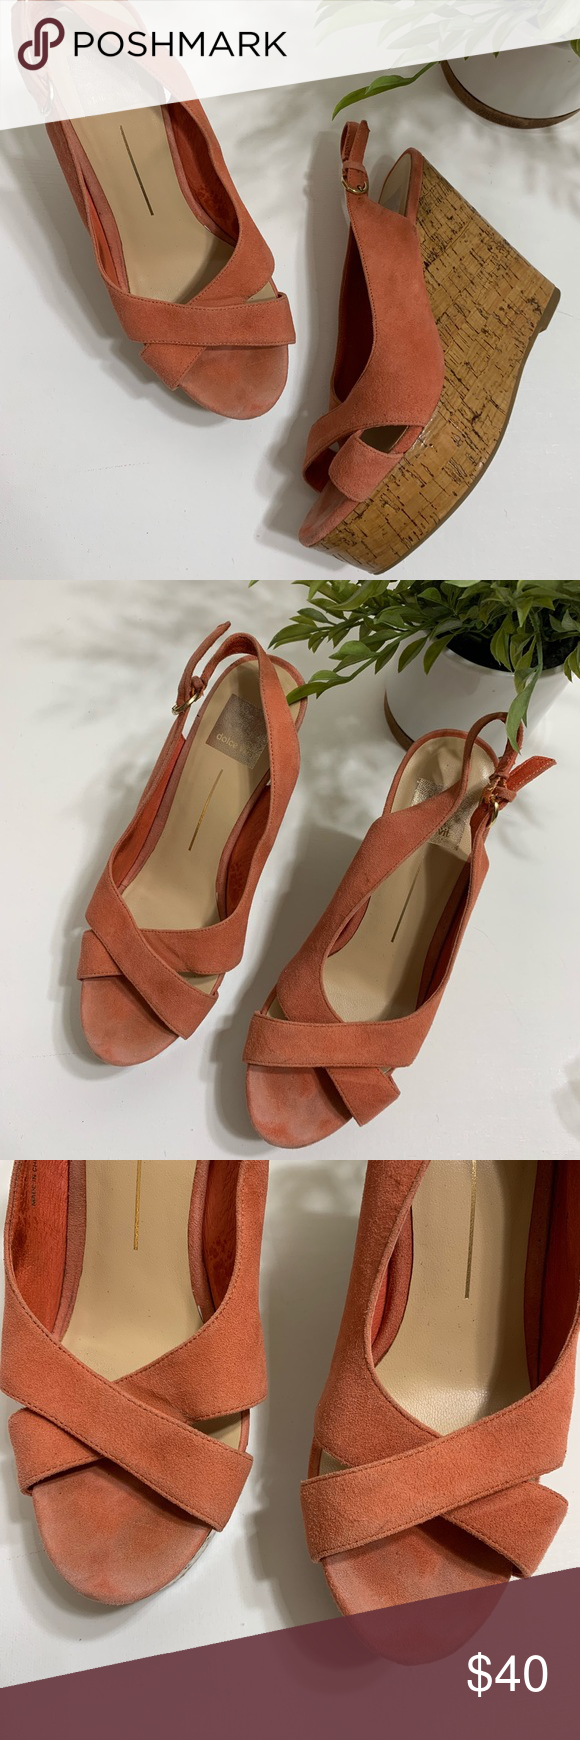 3ccc78a9da8 Dolce Vita • leather peep slingback wedge Great pre-owned condition! No  signs of